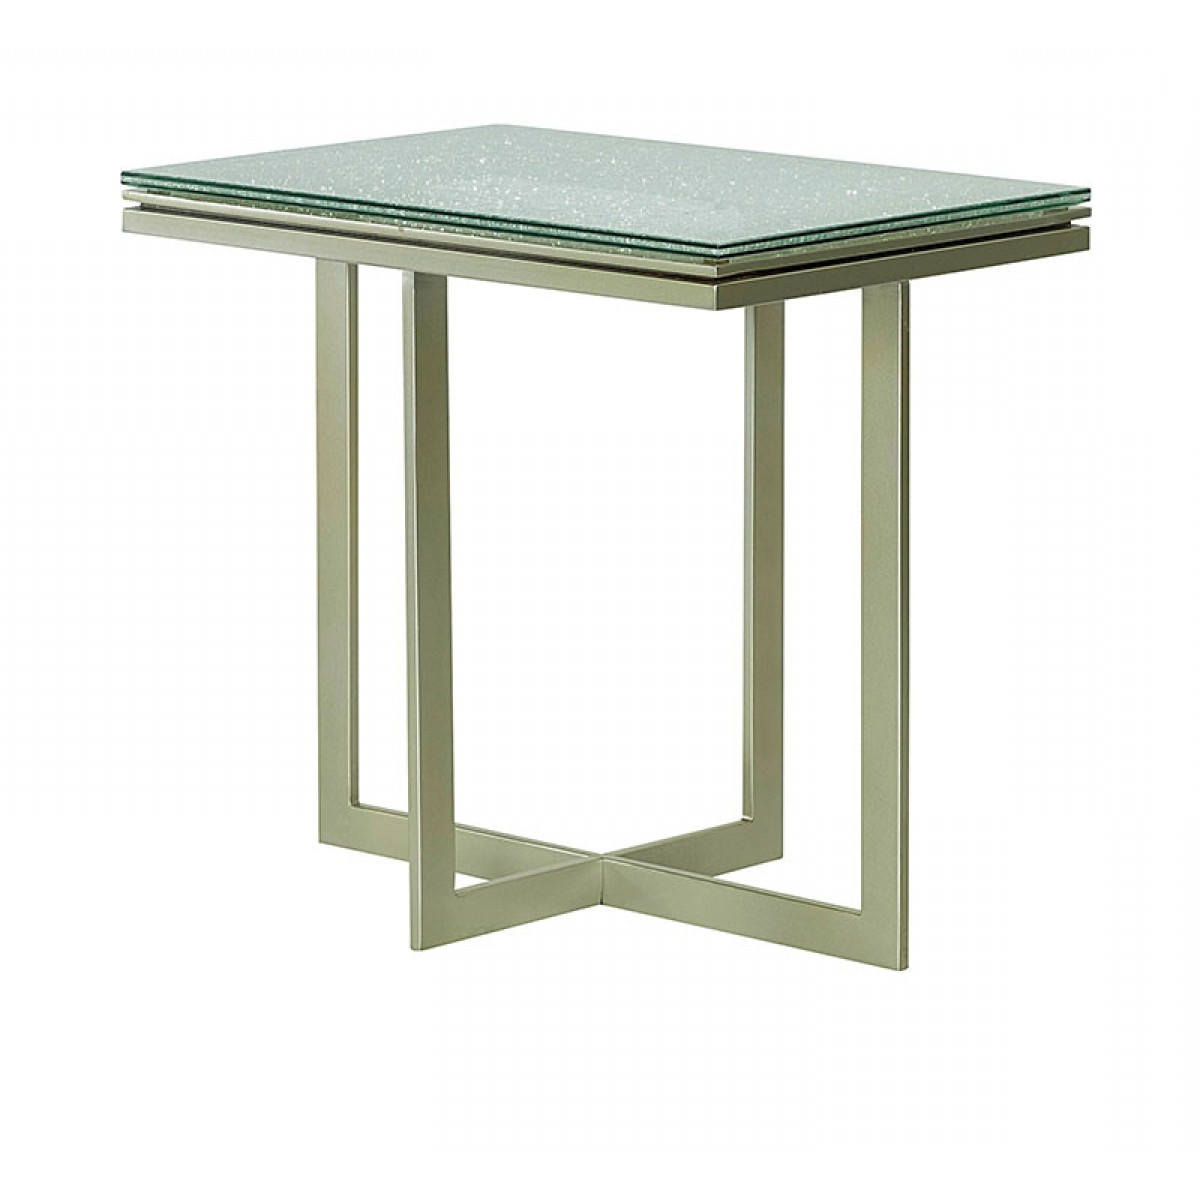 Stratus Cocktail Tables Intended For Current Hammary Stratus Accent Table (Gallery 11 of 20)